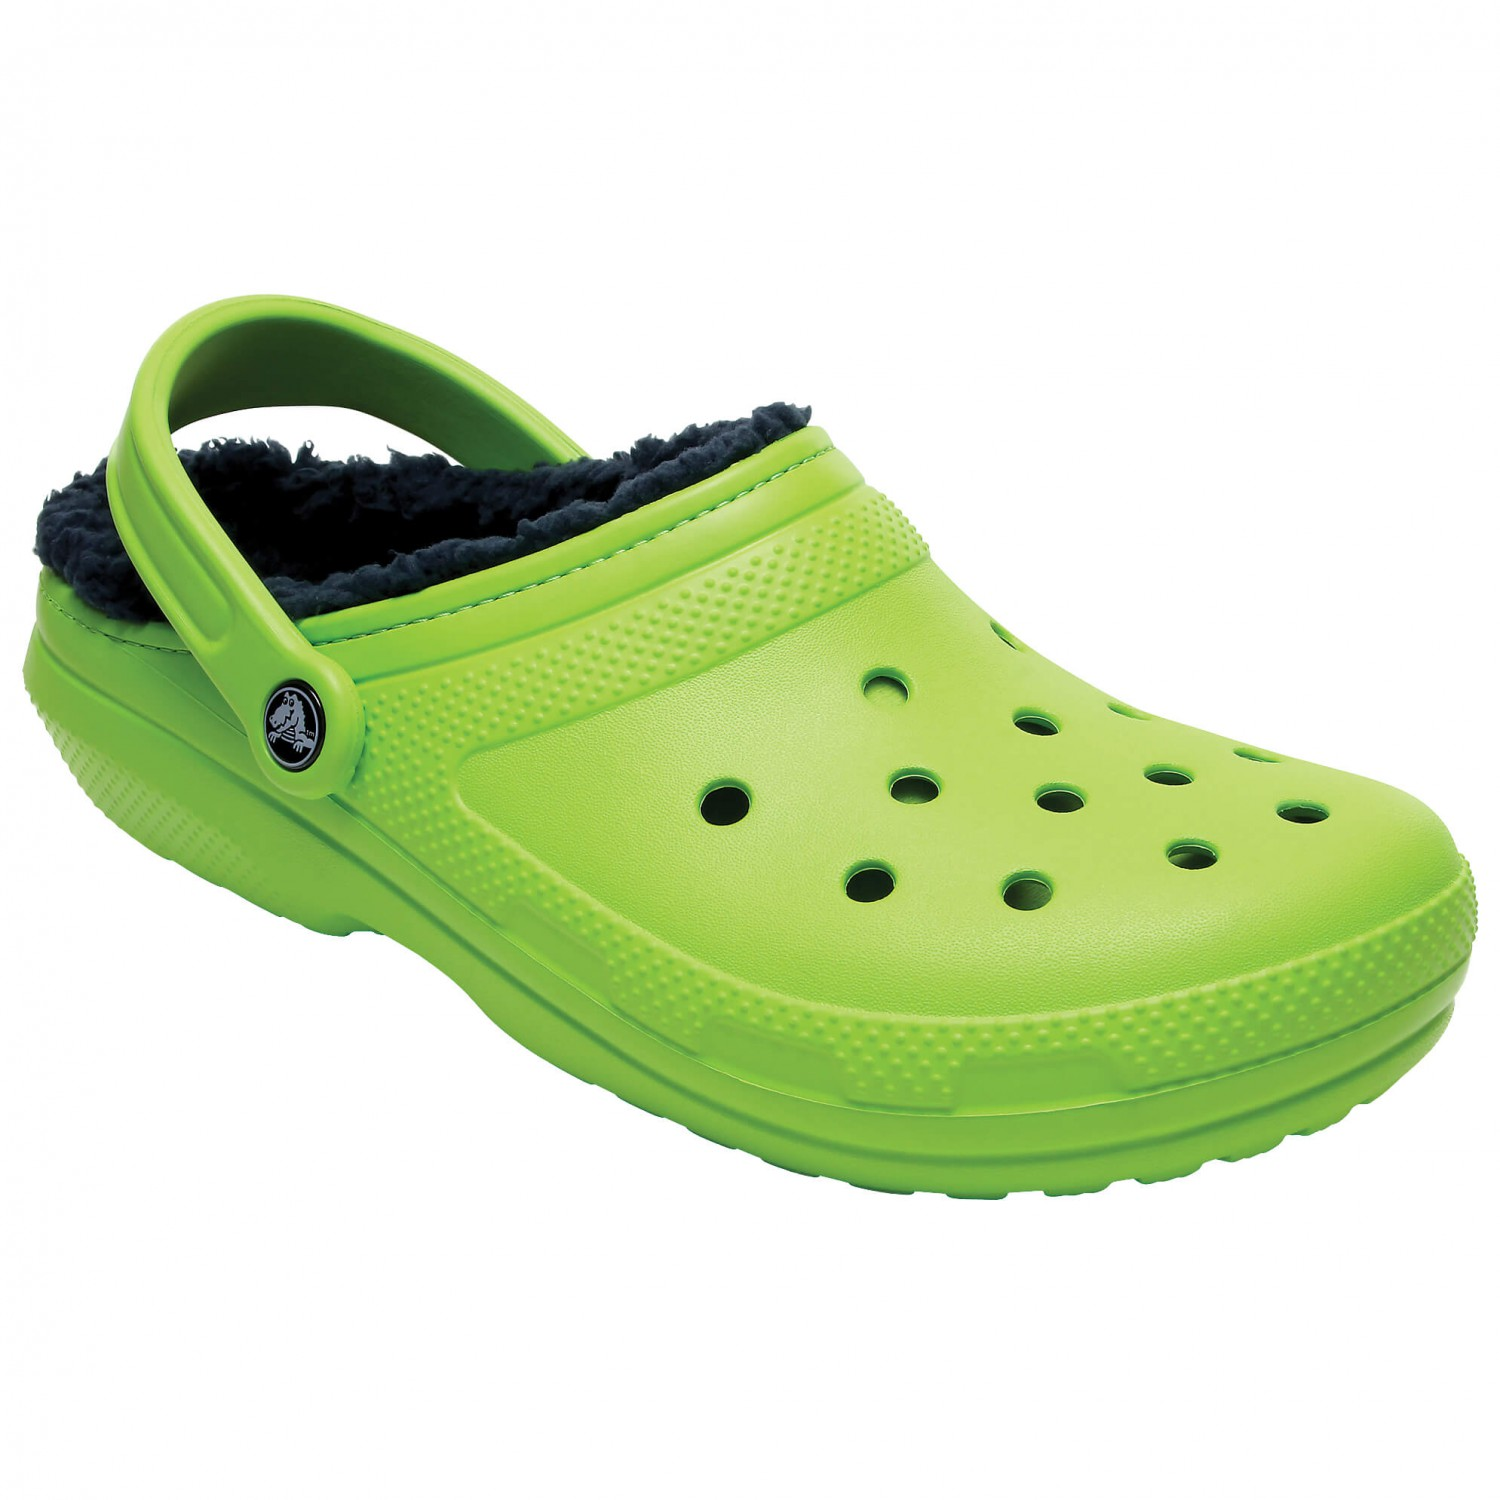 Crocs - Classic Lined Clog - Outdoorsandalen Volt Green / Navy